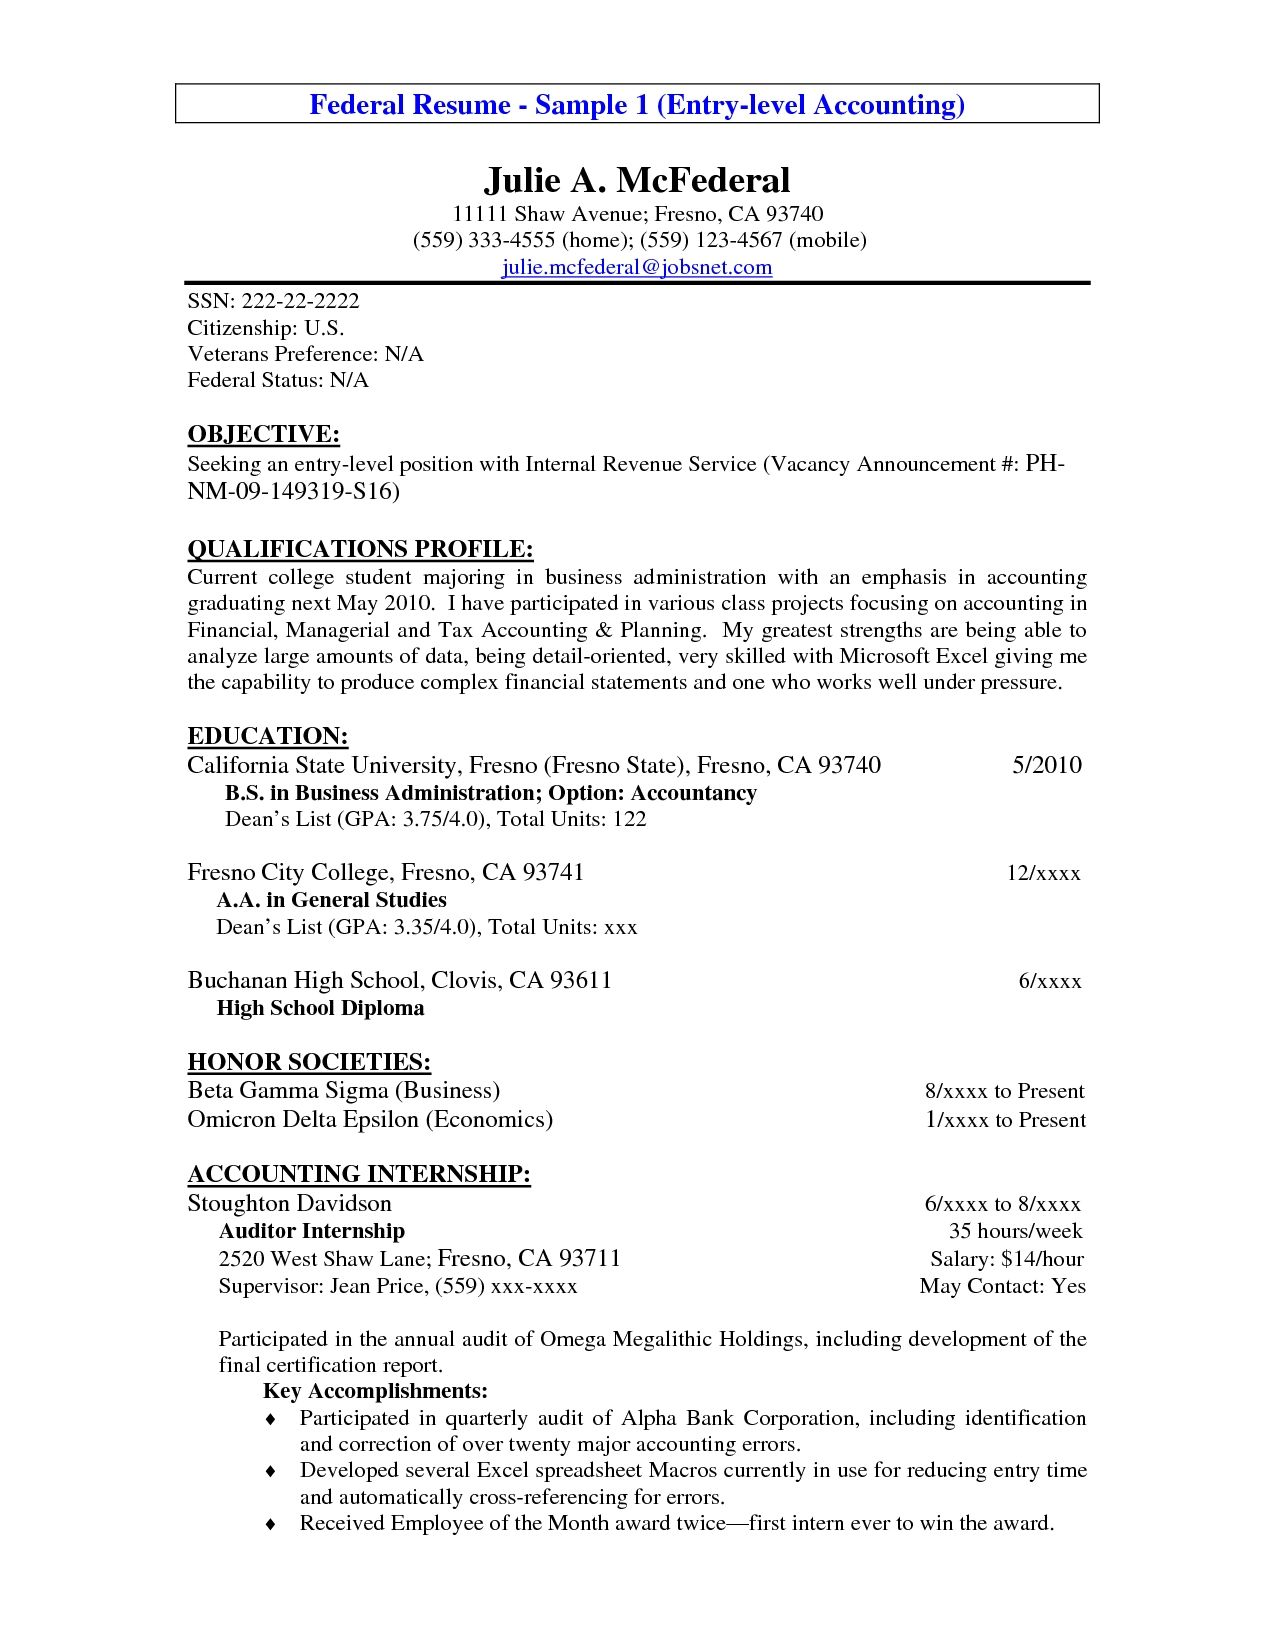 Beginner Resume Examples Entry Level Resume Example Entry Level Accounting Resume Sample .